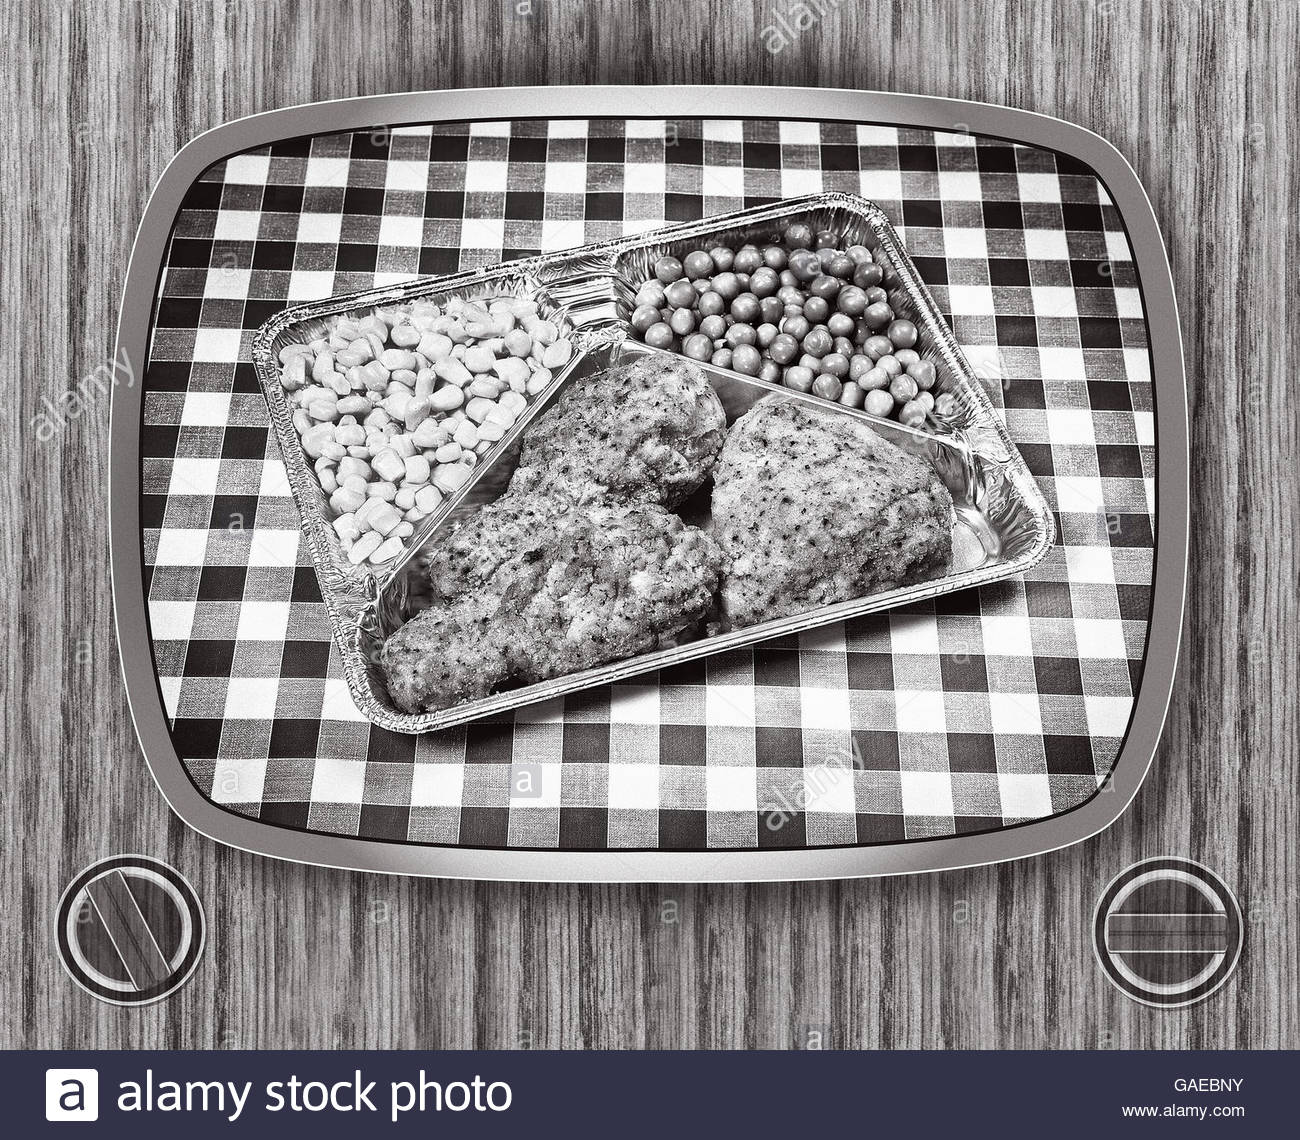 TV dinner tray vintage retro meal aluminum dish with surround - Stock Image